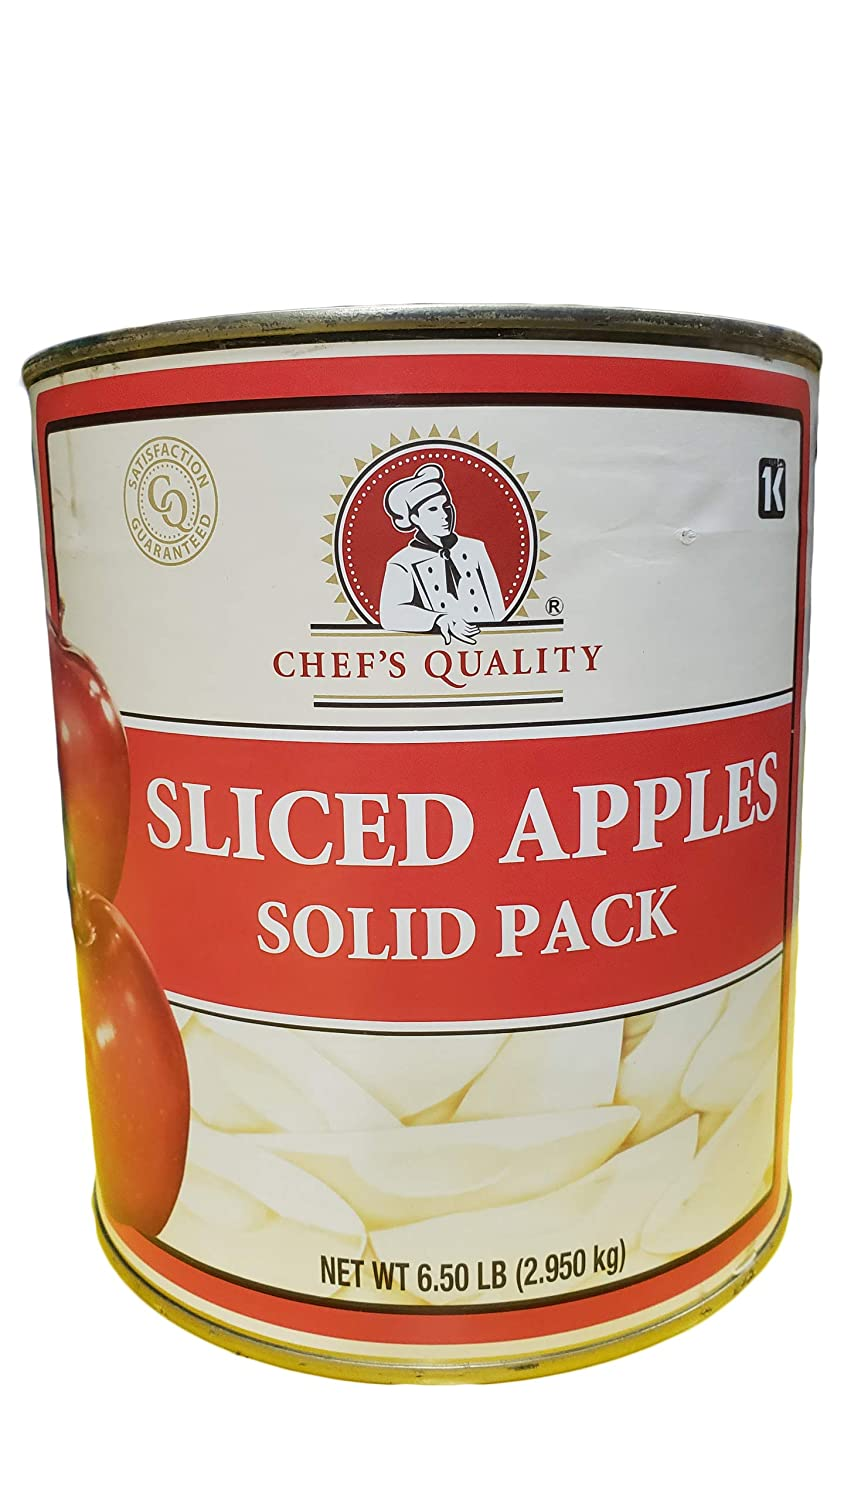 Chef's Quality - Sliced Apples - 6 lb can